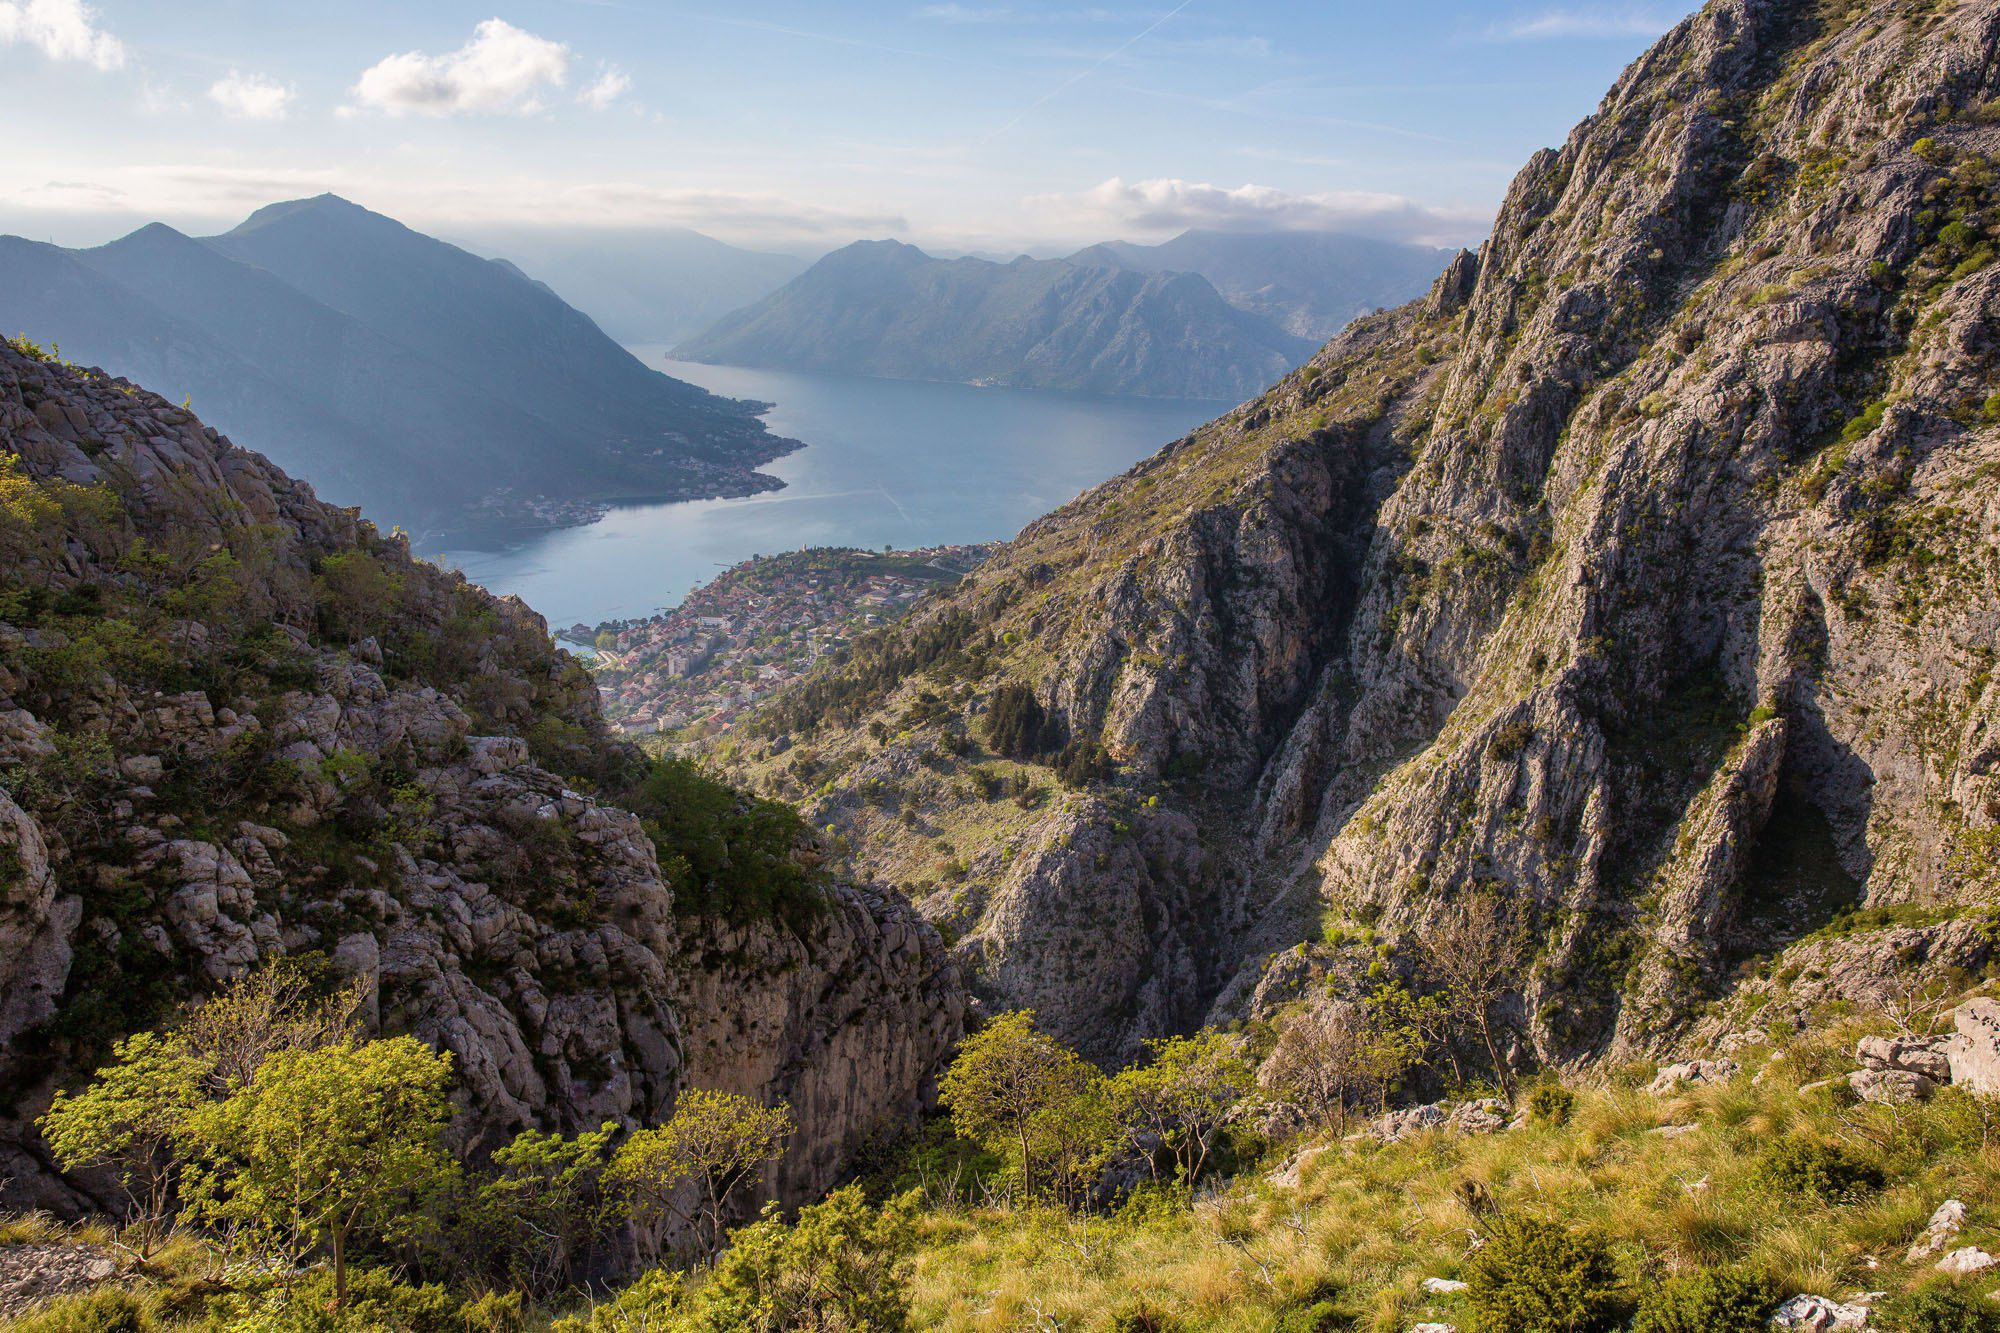 Hiking Ladder of Kotor